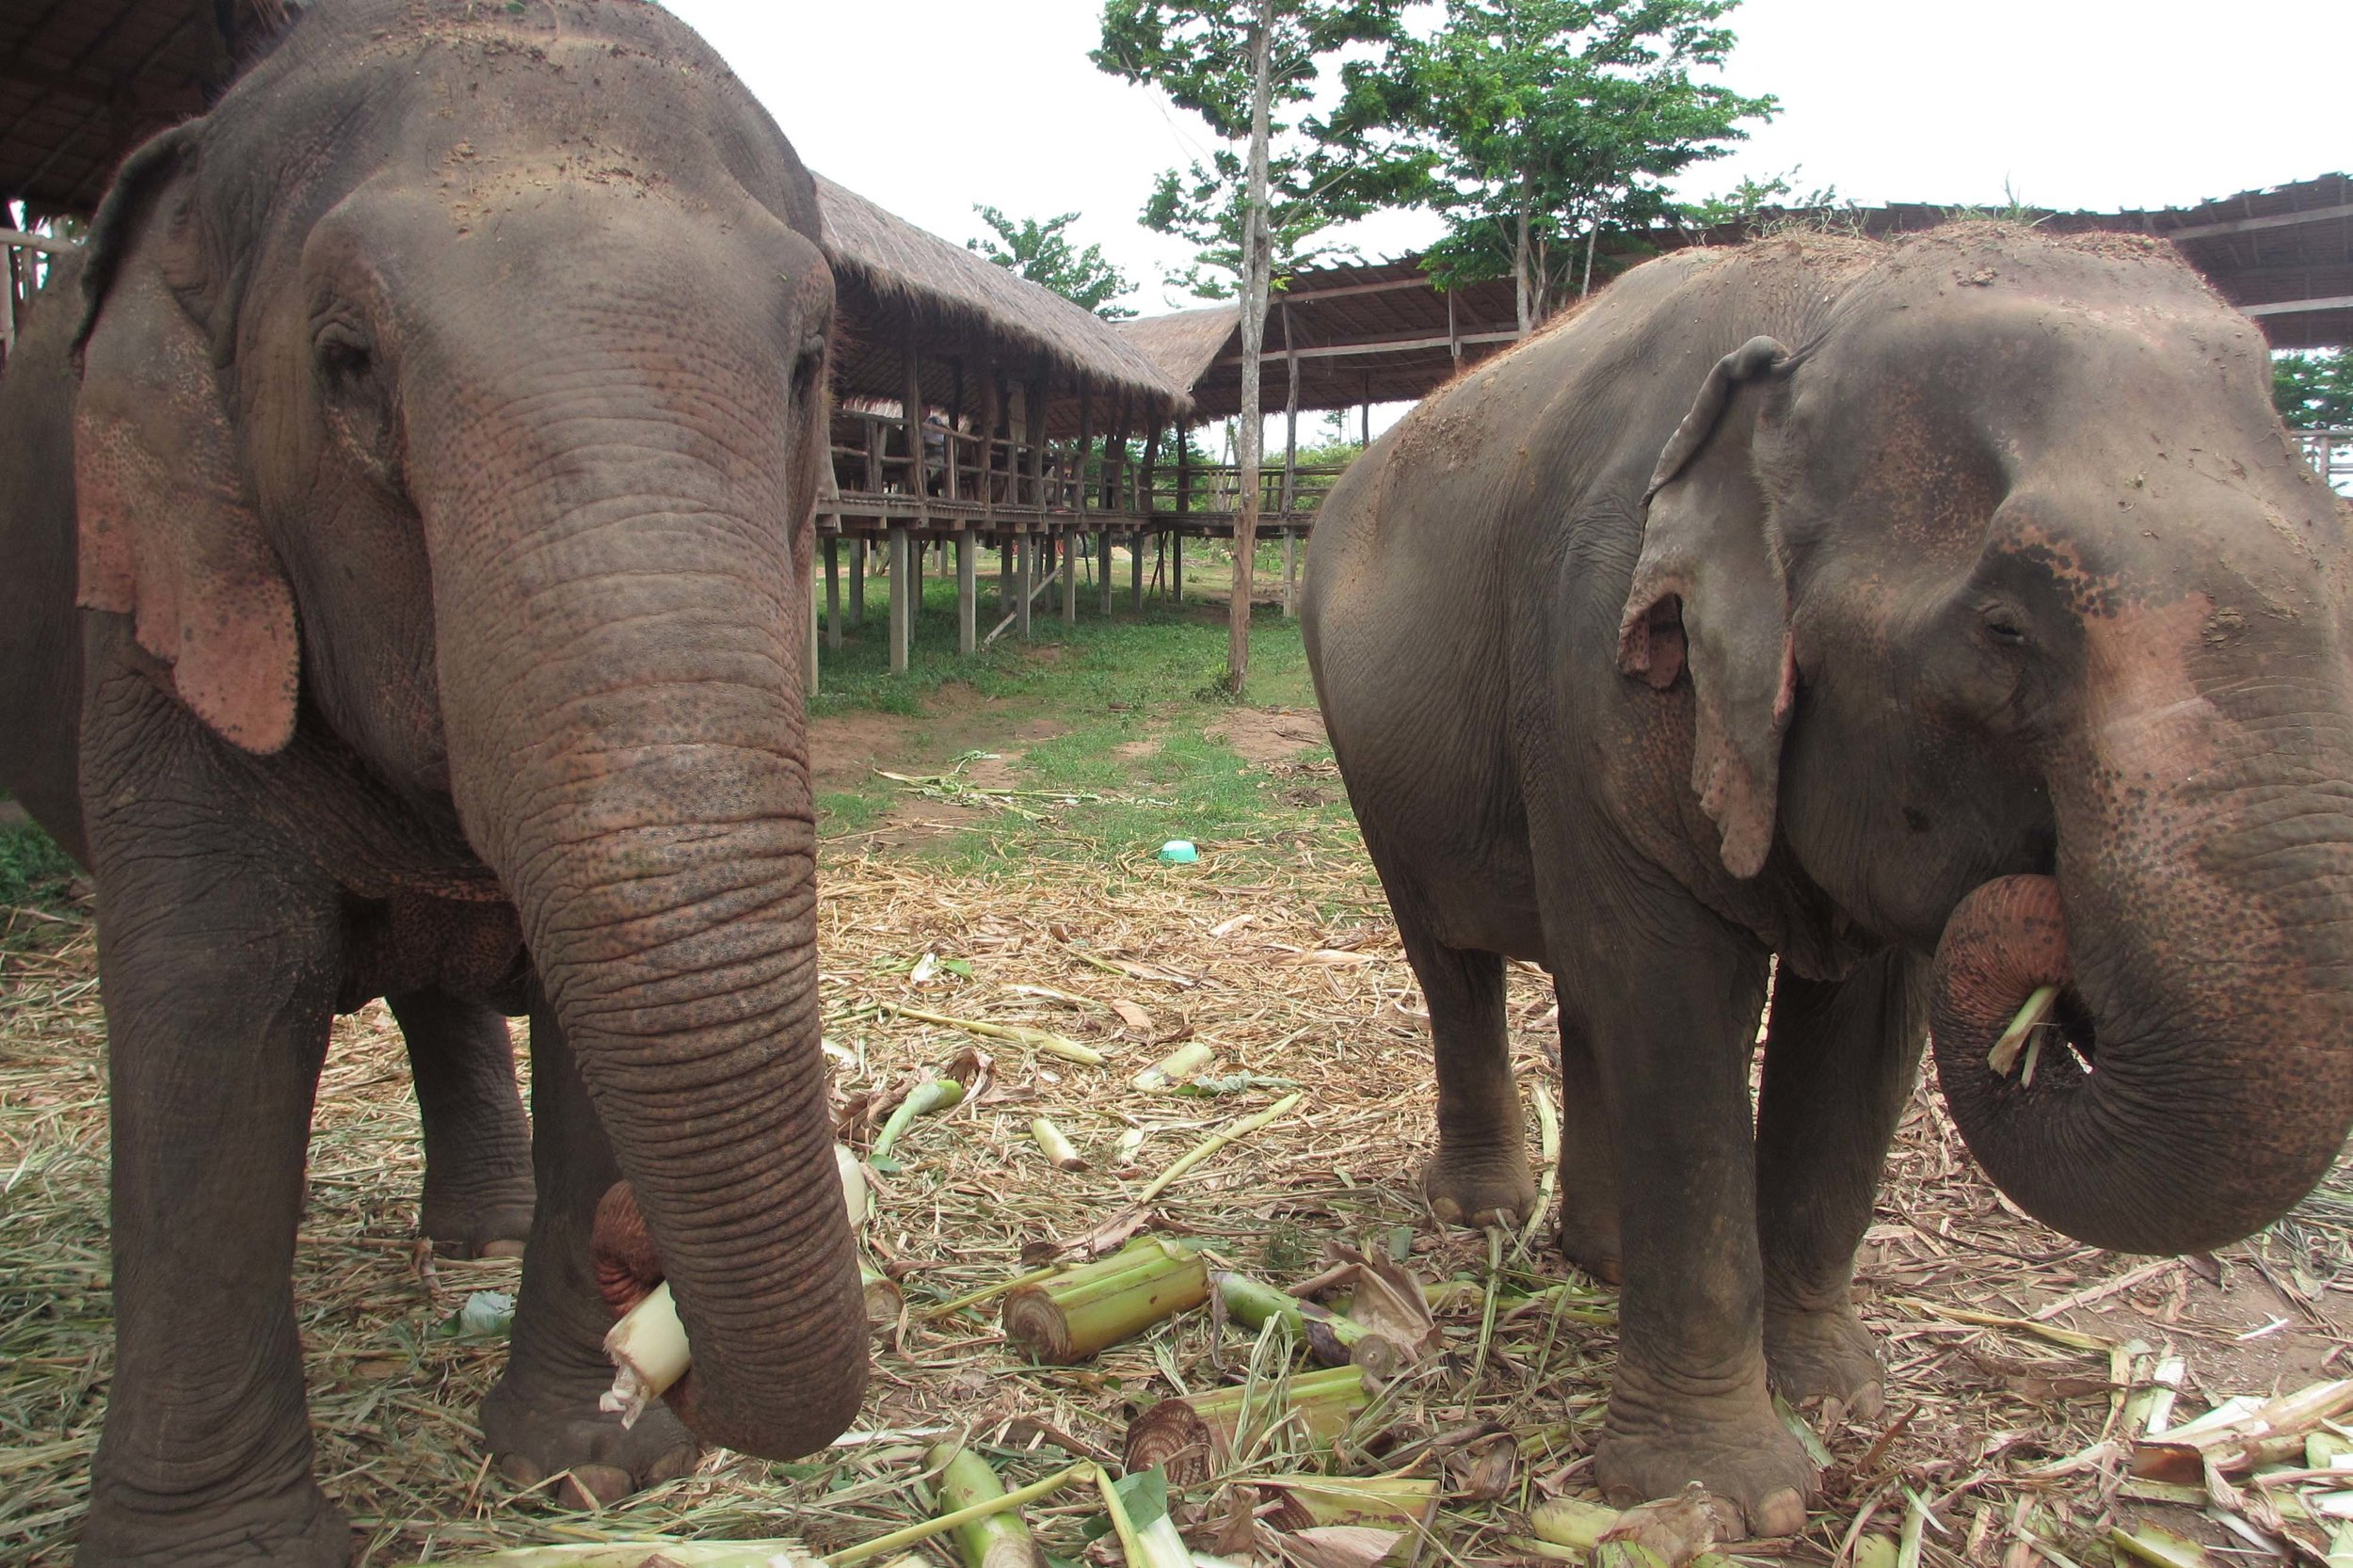 Retired working elephants at ElephantsWorld in Thailand enjoy a snack on sugar cane © Sarah Reid